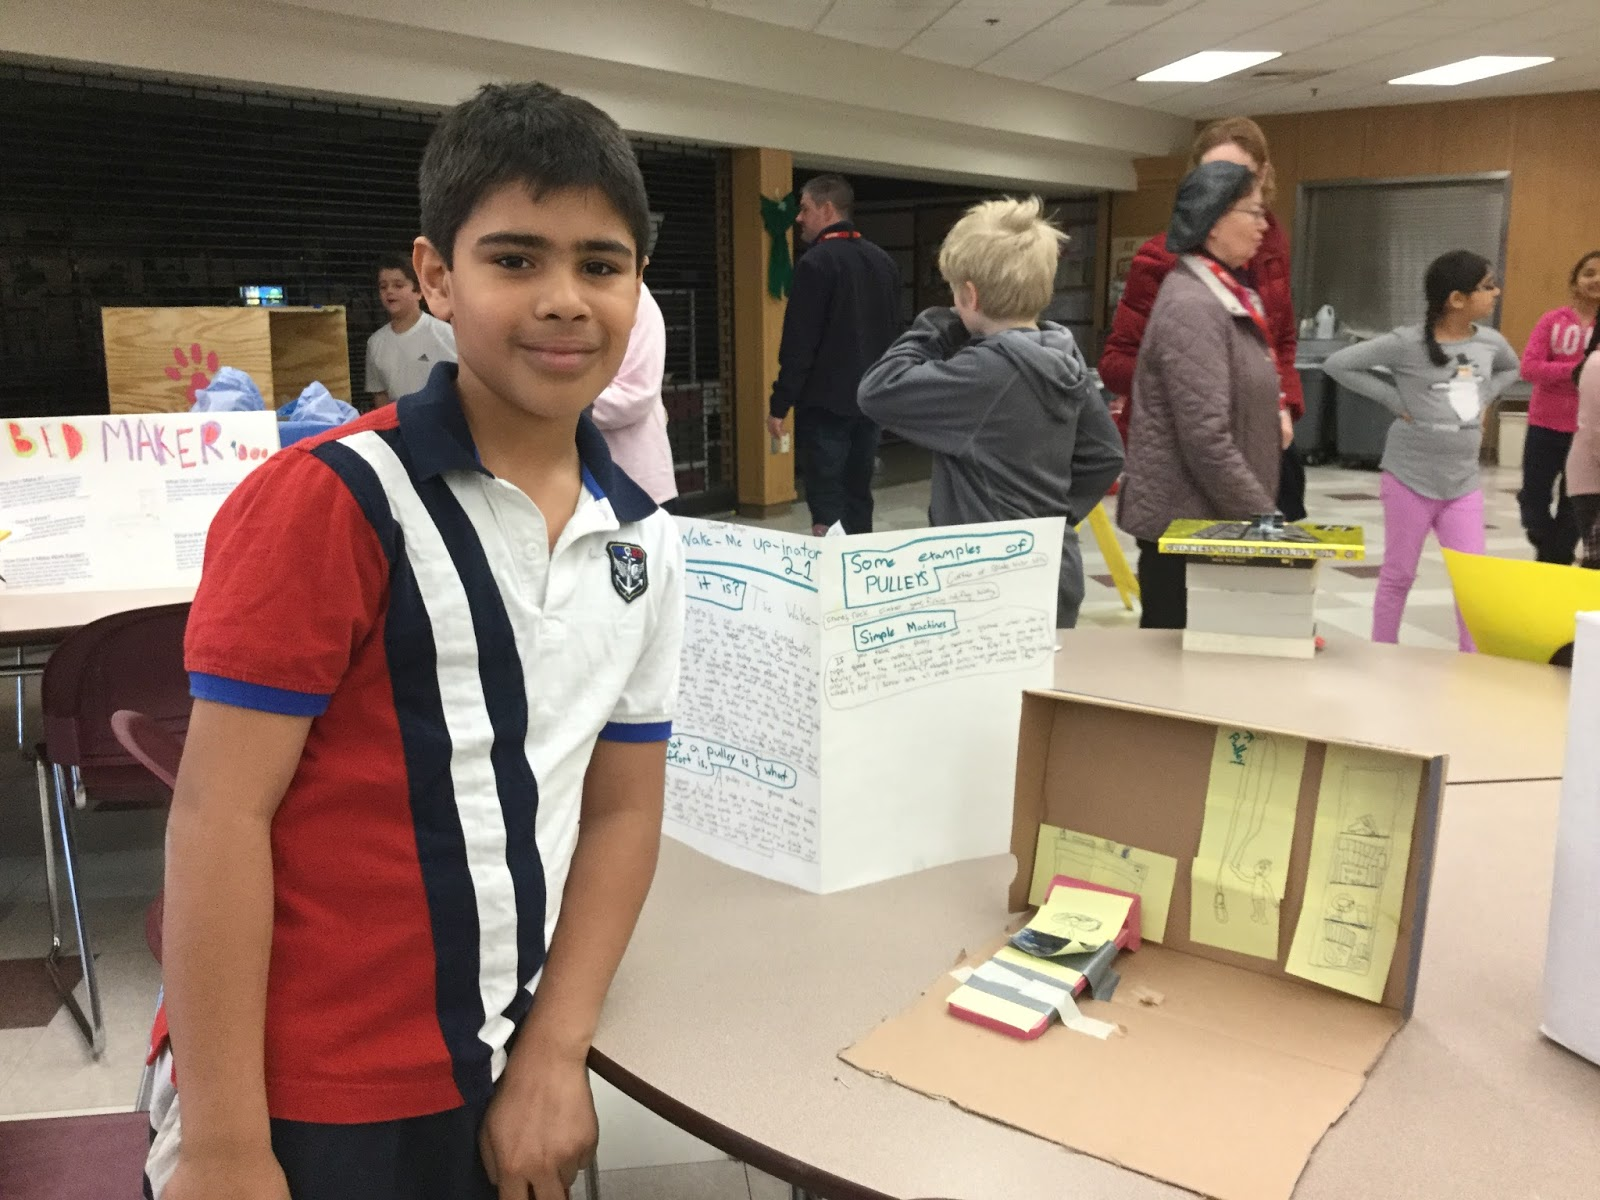 the manning and goulding classes held a successful invention convention thanks to all the families who helped us with the process and attended the